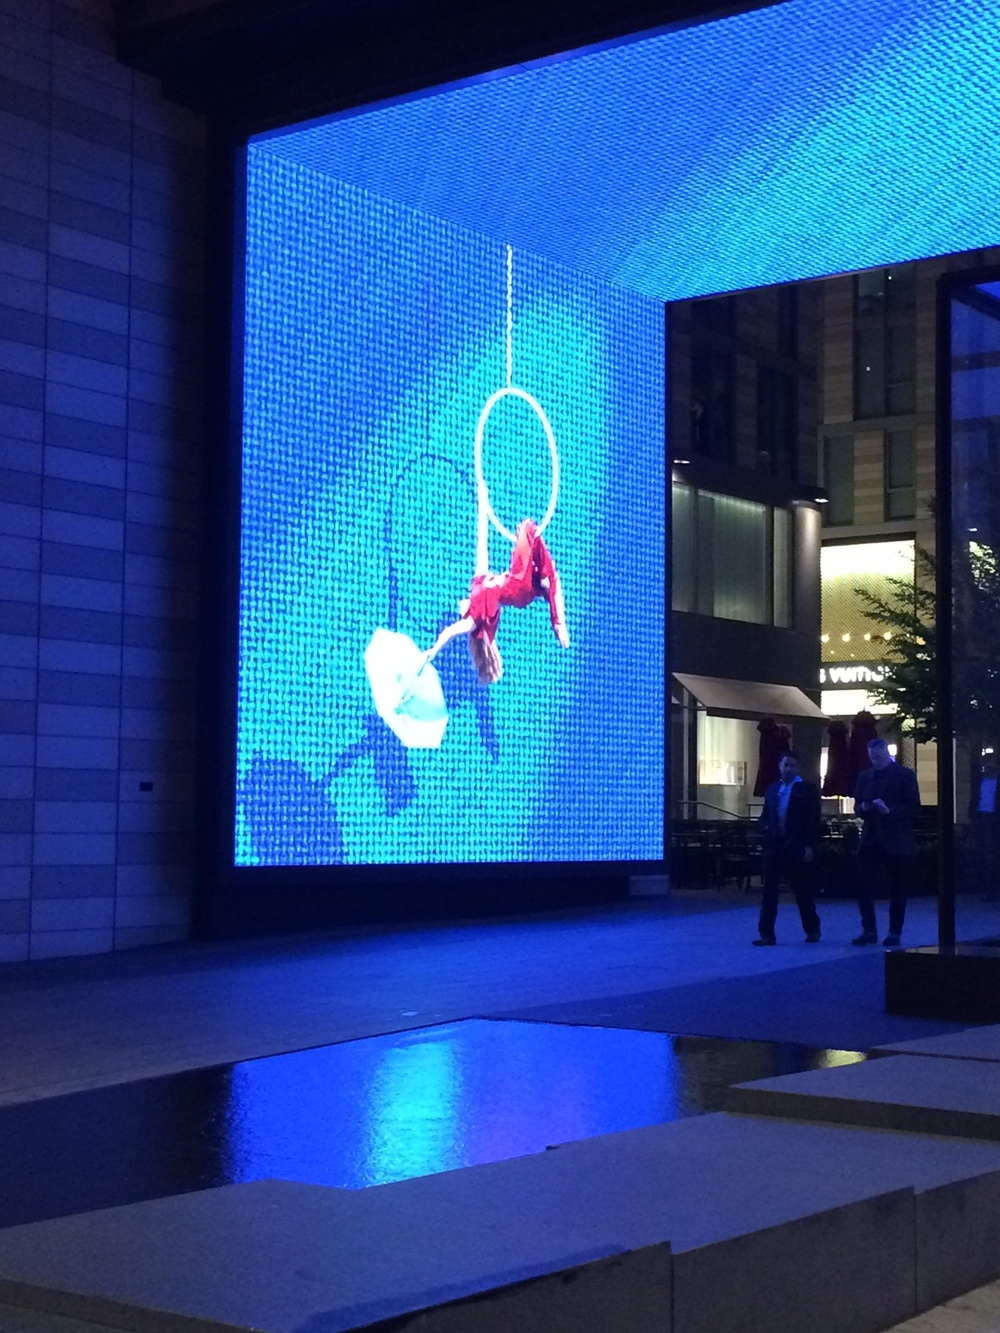 Three dimensional Vignettes appearing on the LED Screens.